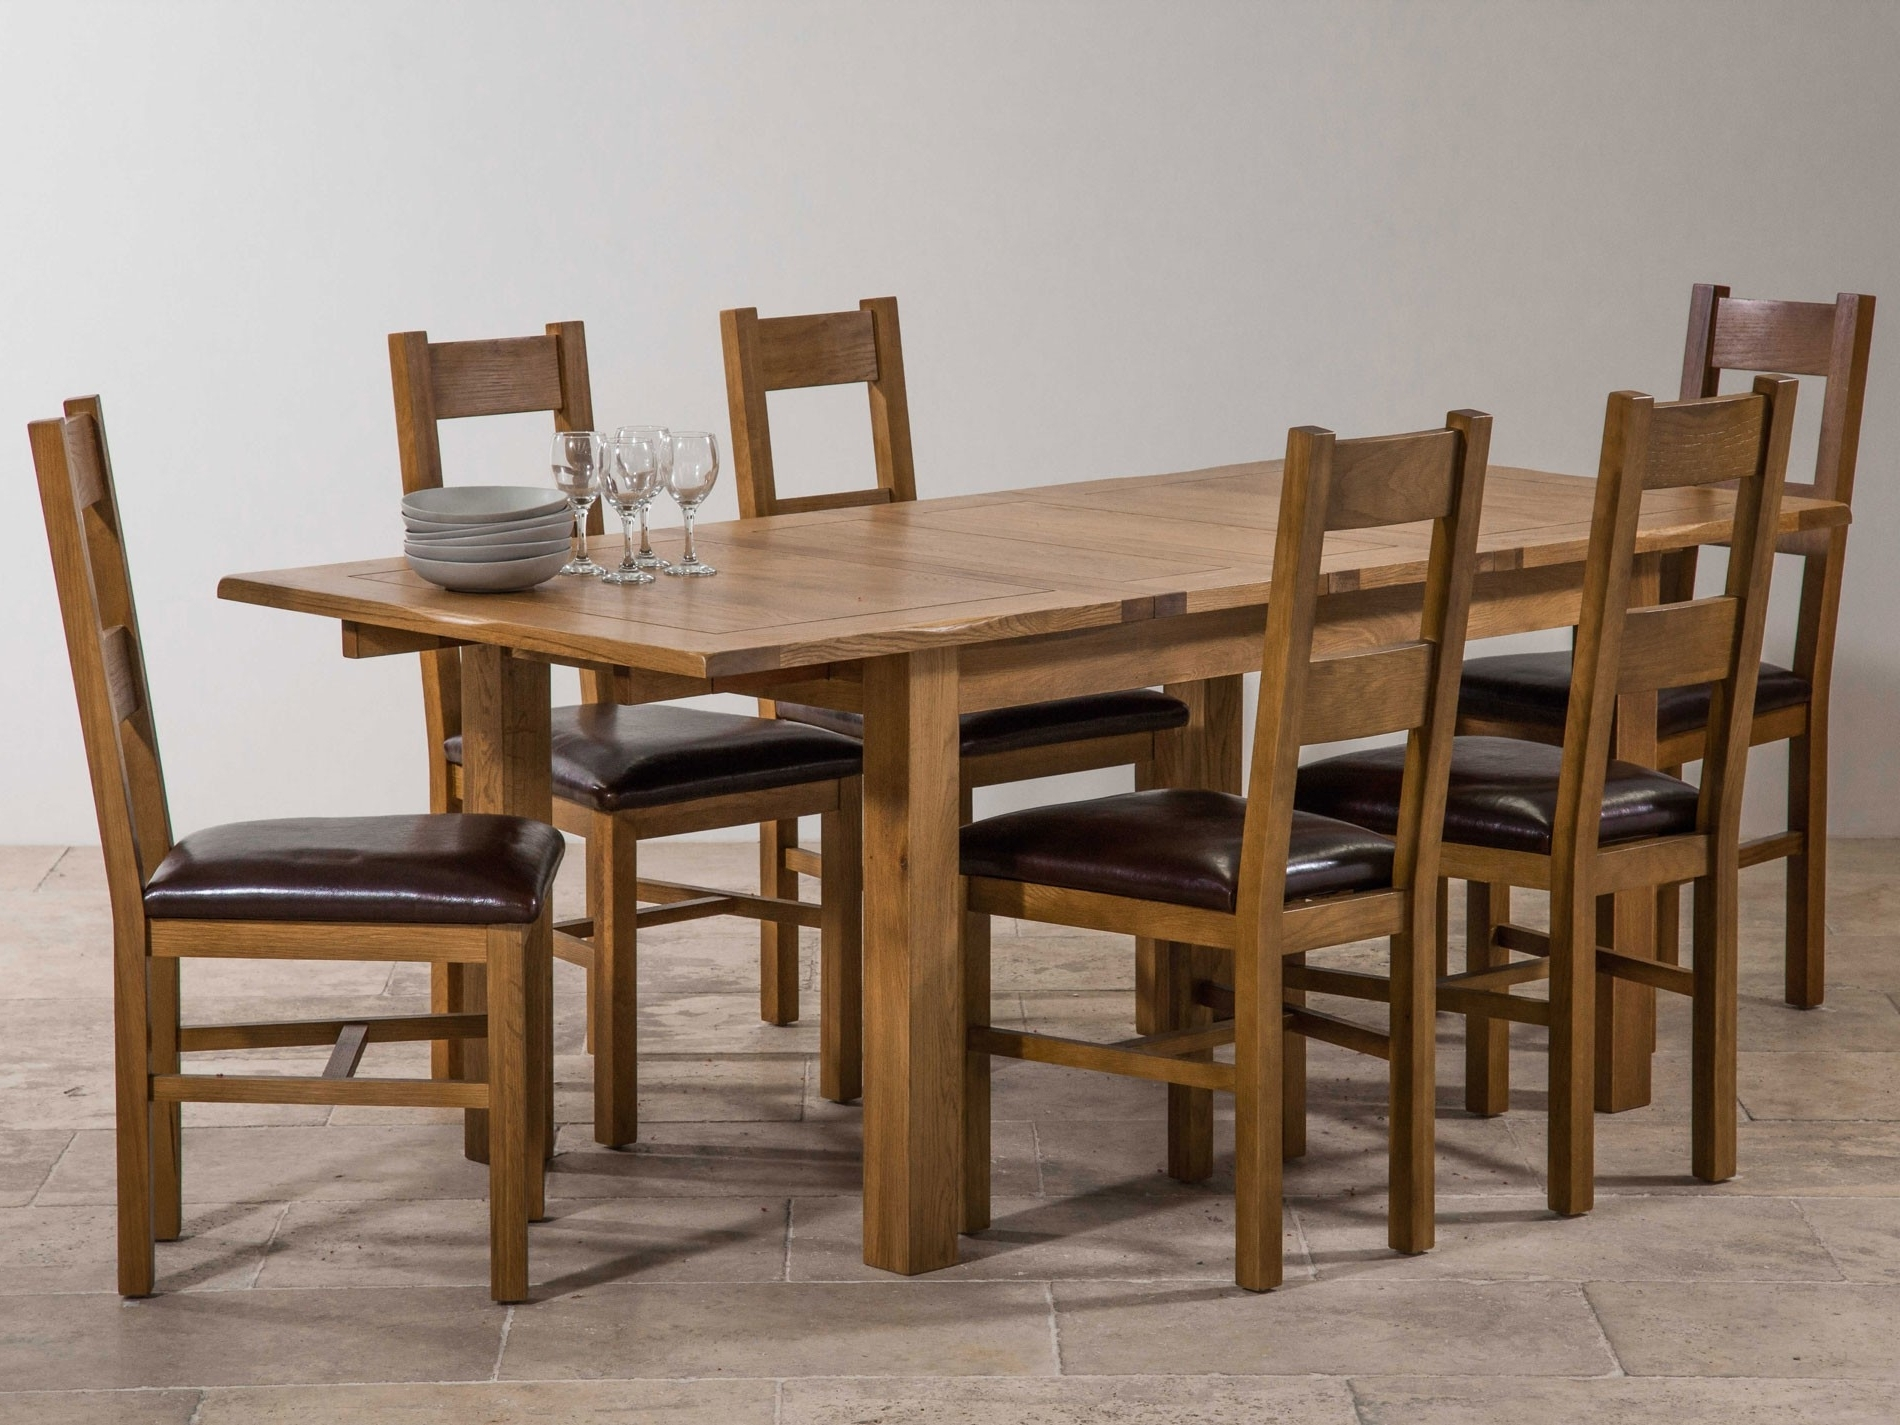 Trendy Square Extending Dining Table And Chairs Inspirational Masso In Oak Extendable Dining Tables And Chairs (View 7 of 25)